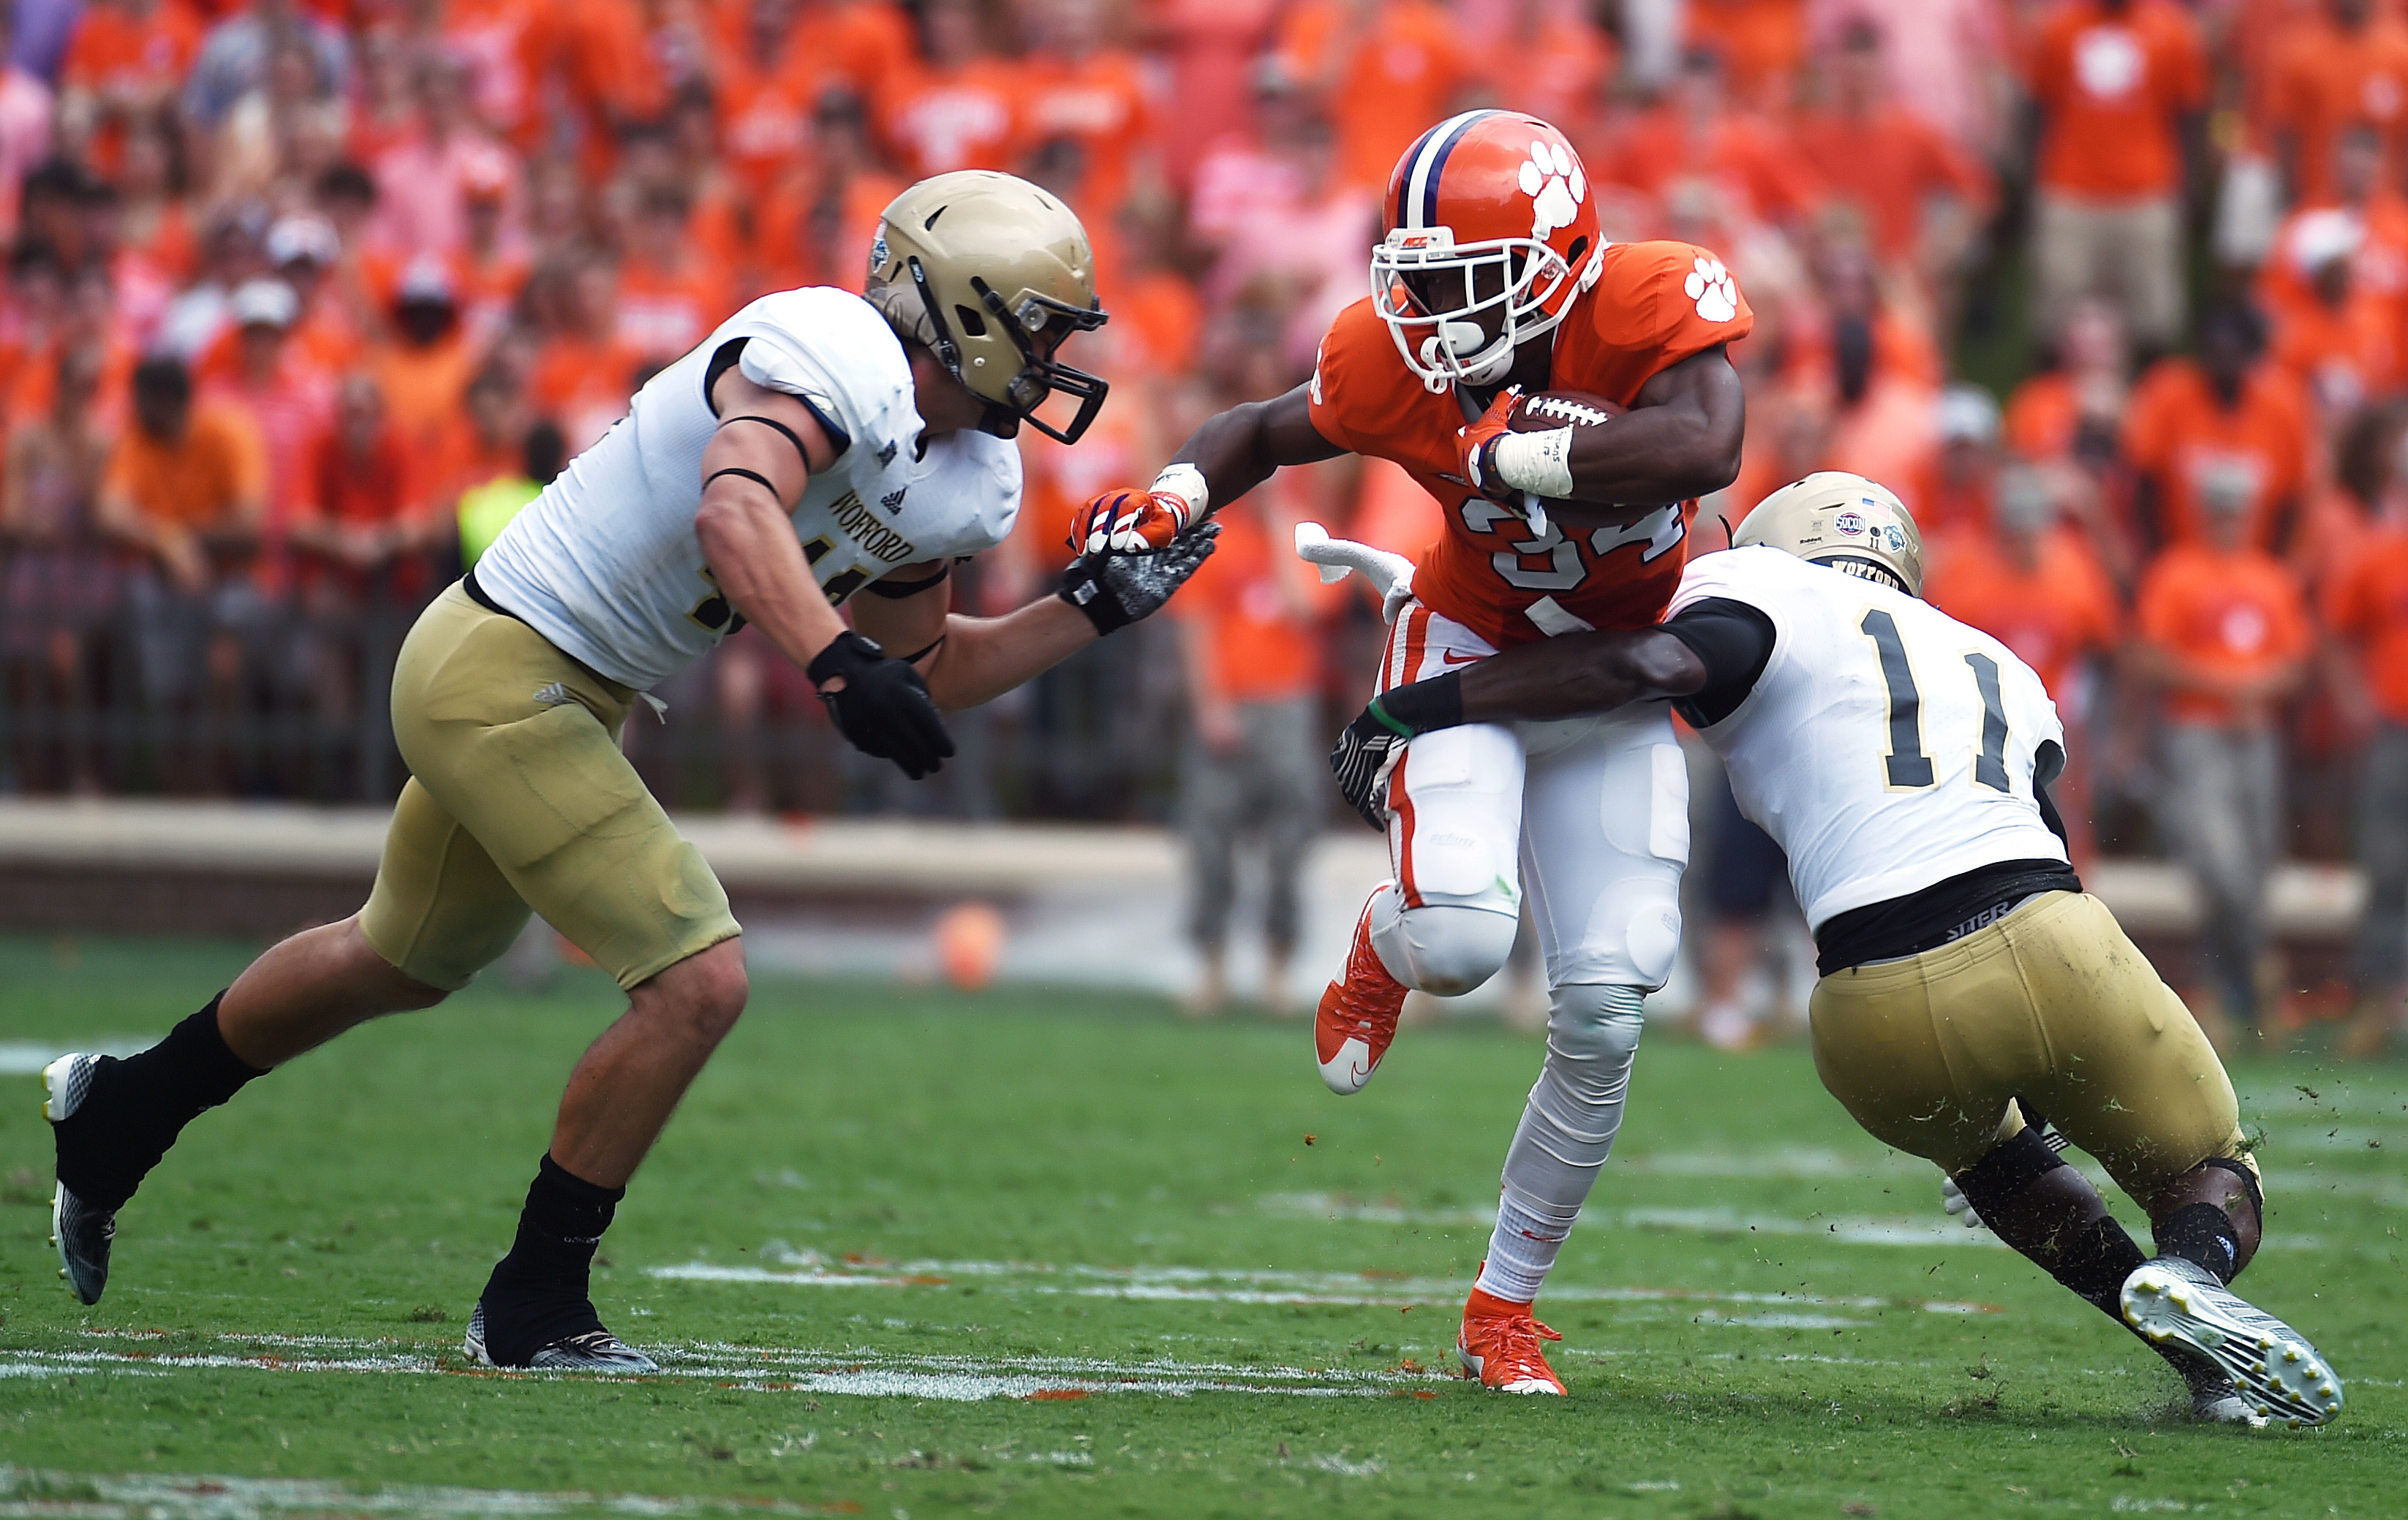 FILE - In this Sept. 5, 2015, file photo, Clemson wide receiver Ray Ray McCloud (34) runs after a catch as Wofford safety Jaleel Green (11) and linebacker Michael Roach (43) defend during the first half of an NCAA college football game in Clemson, S.C. Ro